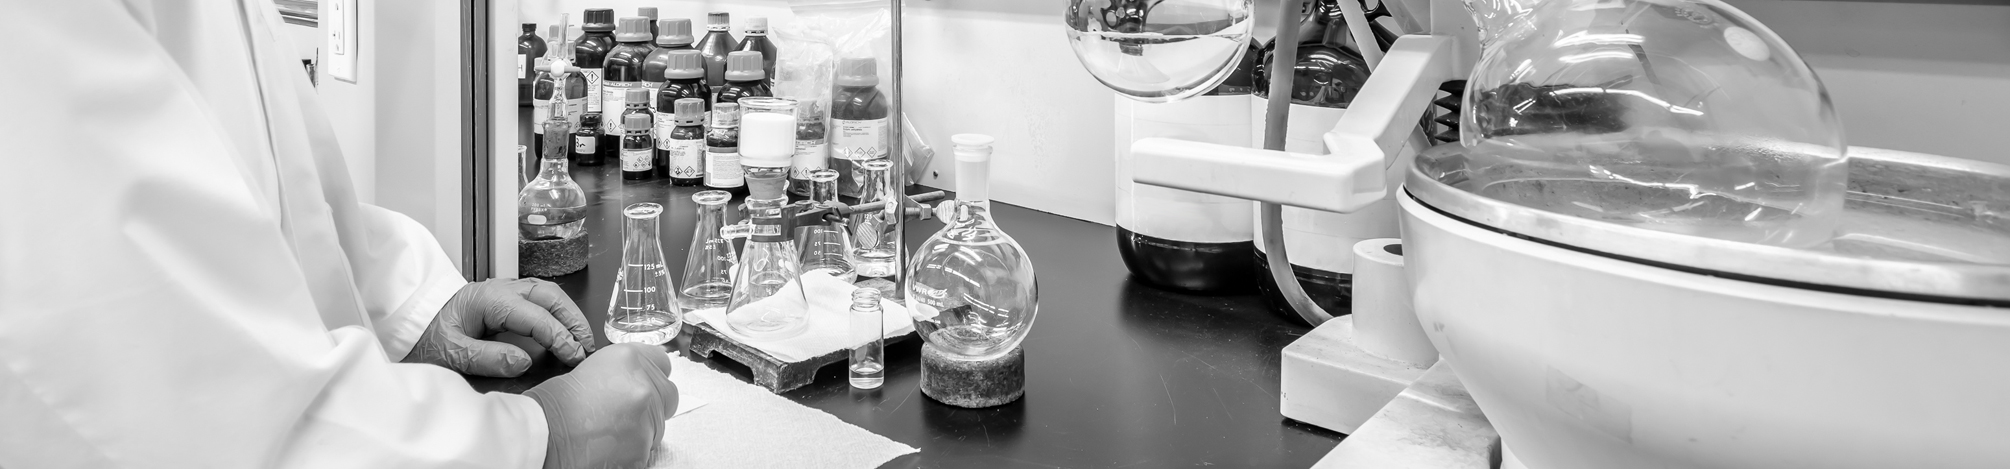 Close-up of fume hood with a rotary evaporator and a chemist conducting column chromatography.